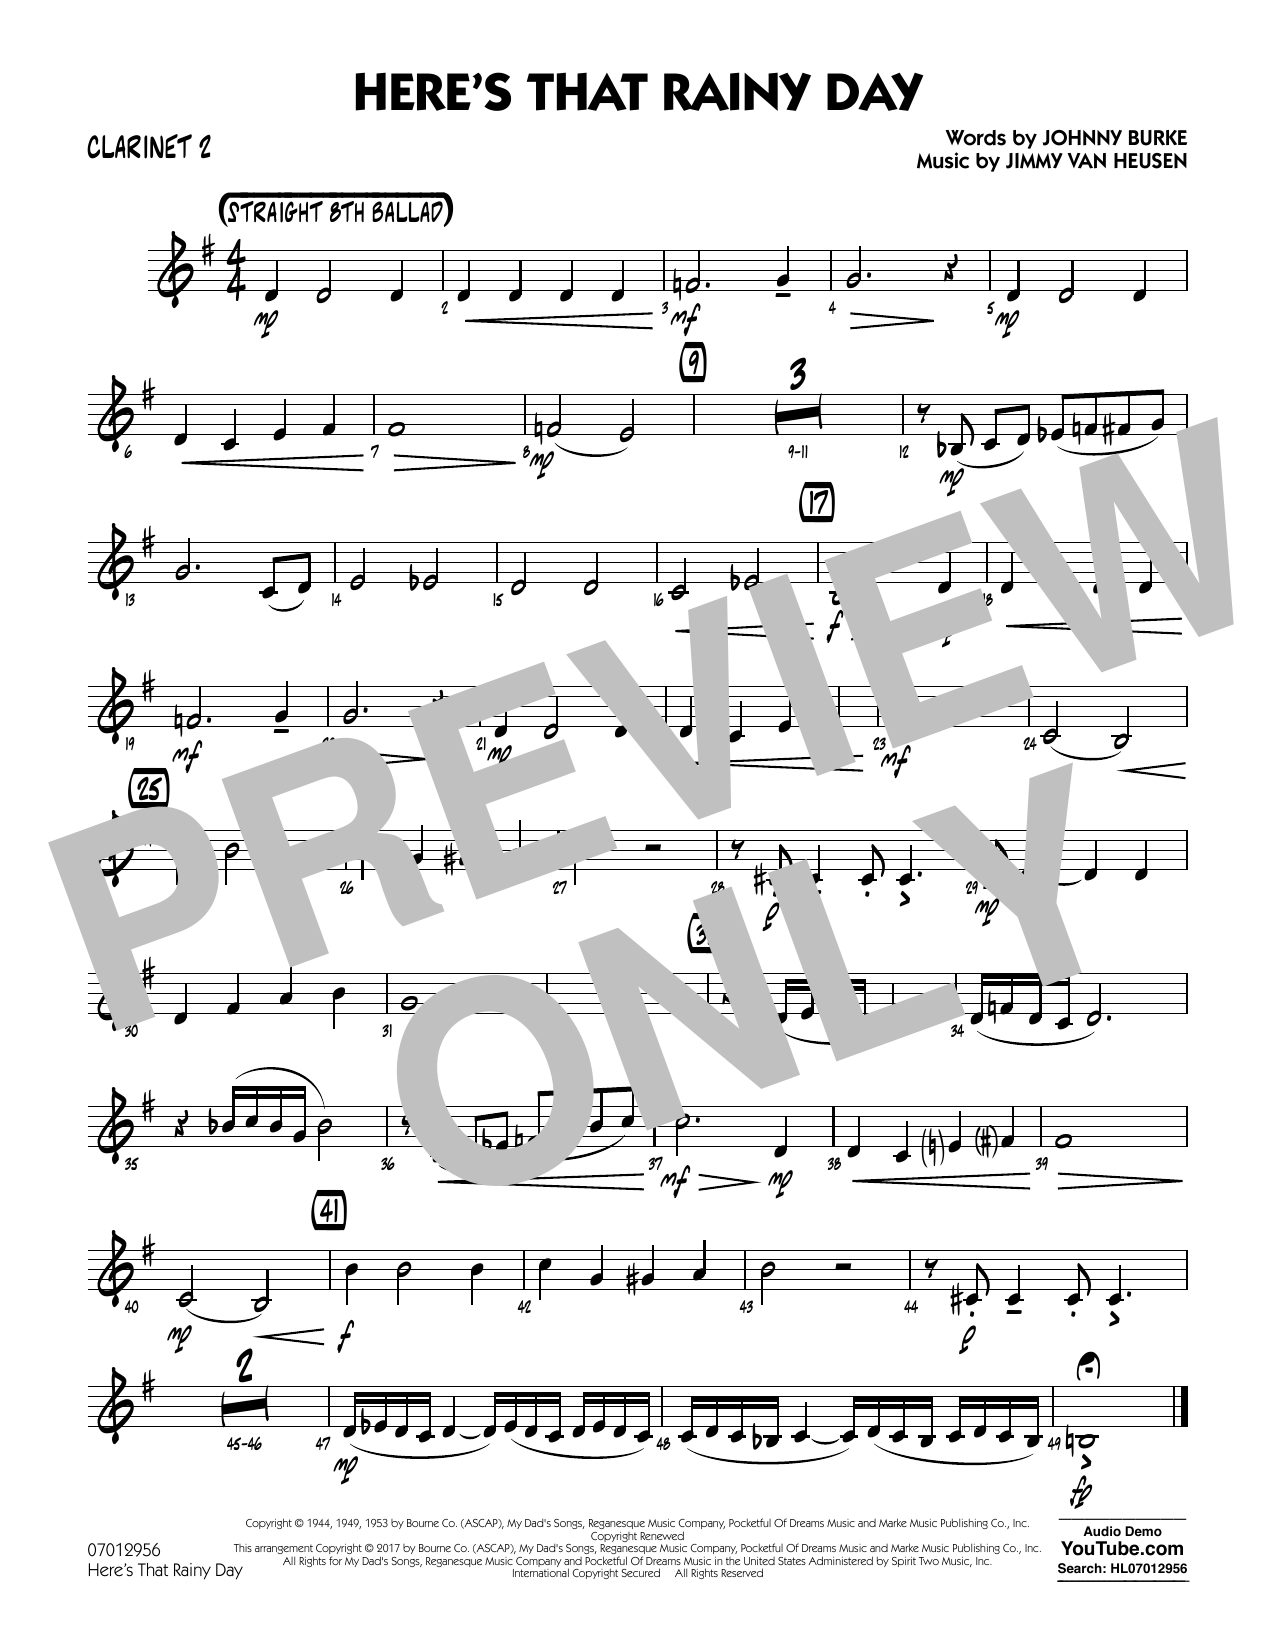 Rick Stitzel Here's That Rainy Day - Clarinet 2 sheet music notes and chords. Download Printable PDF.